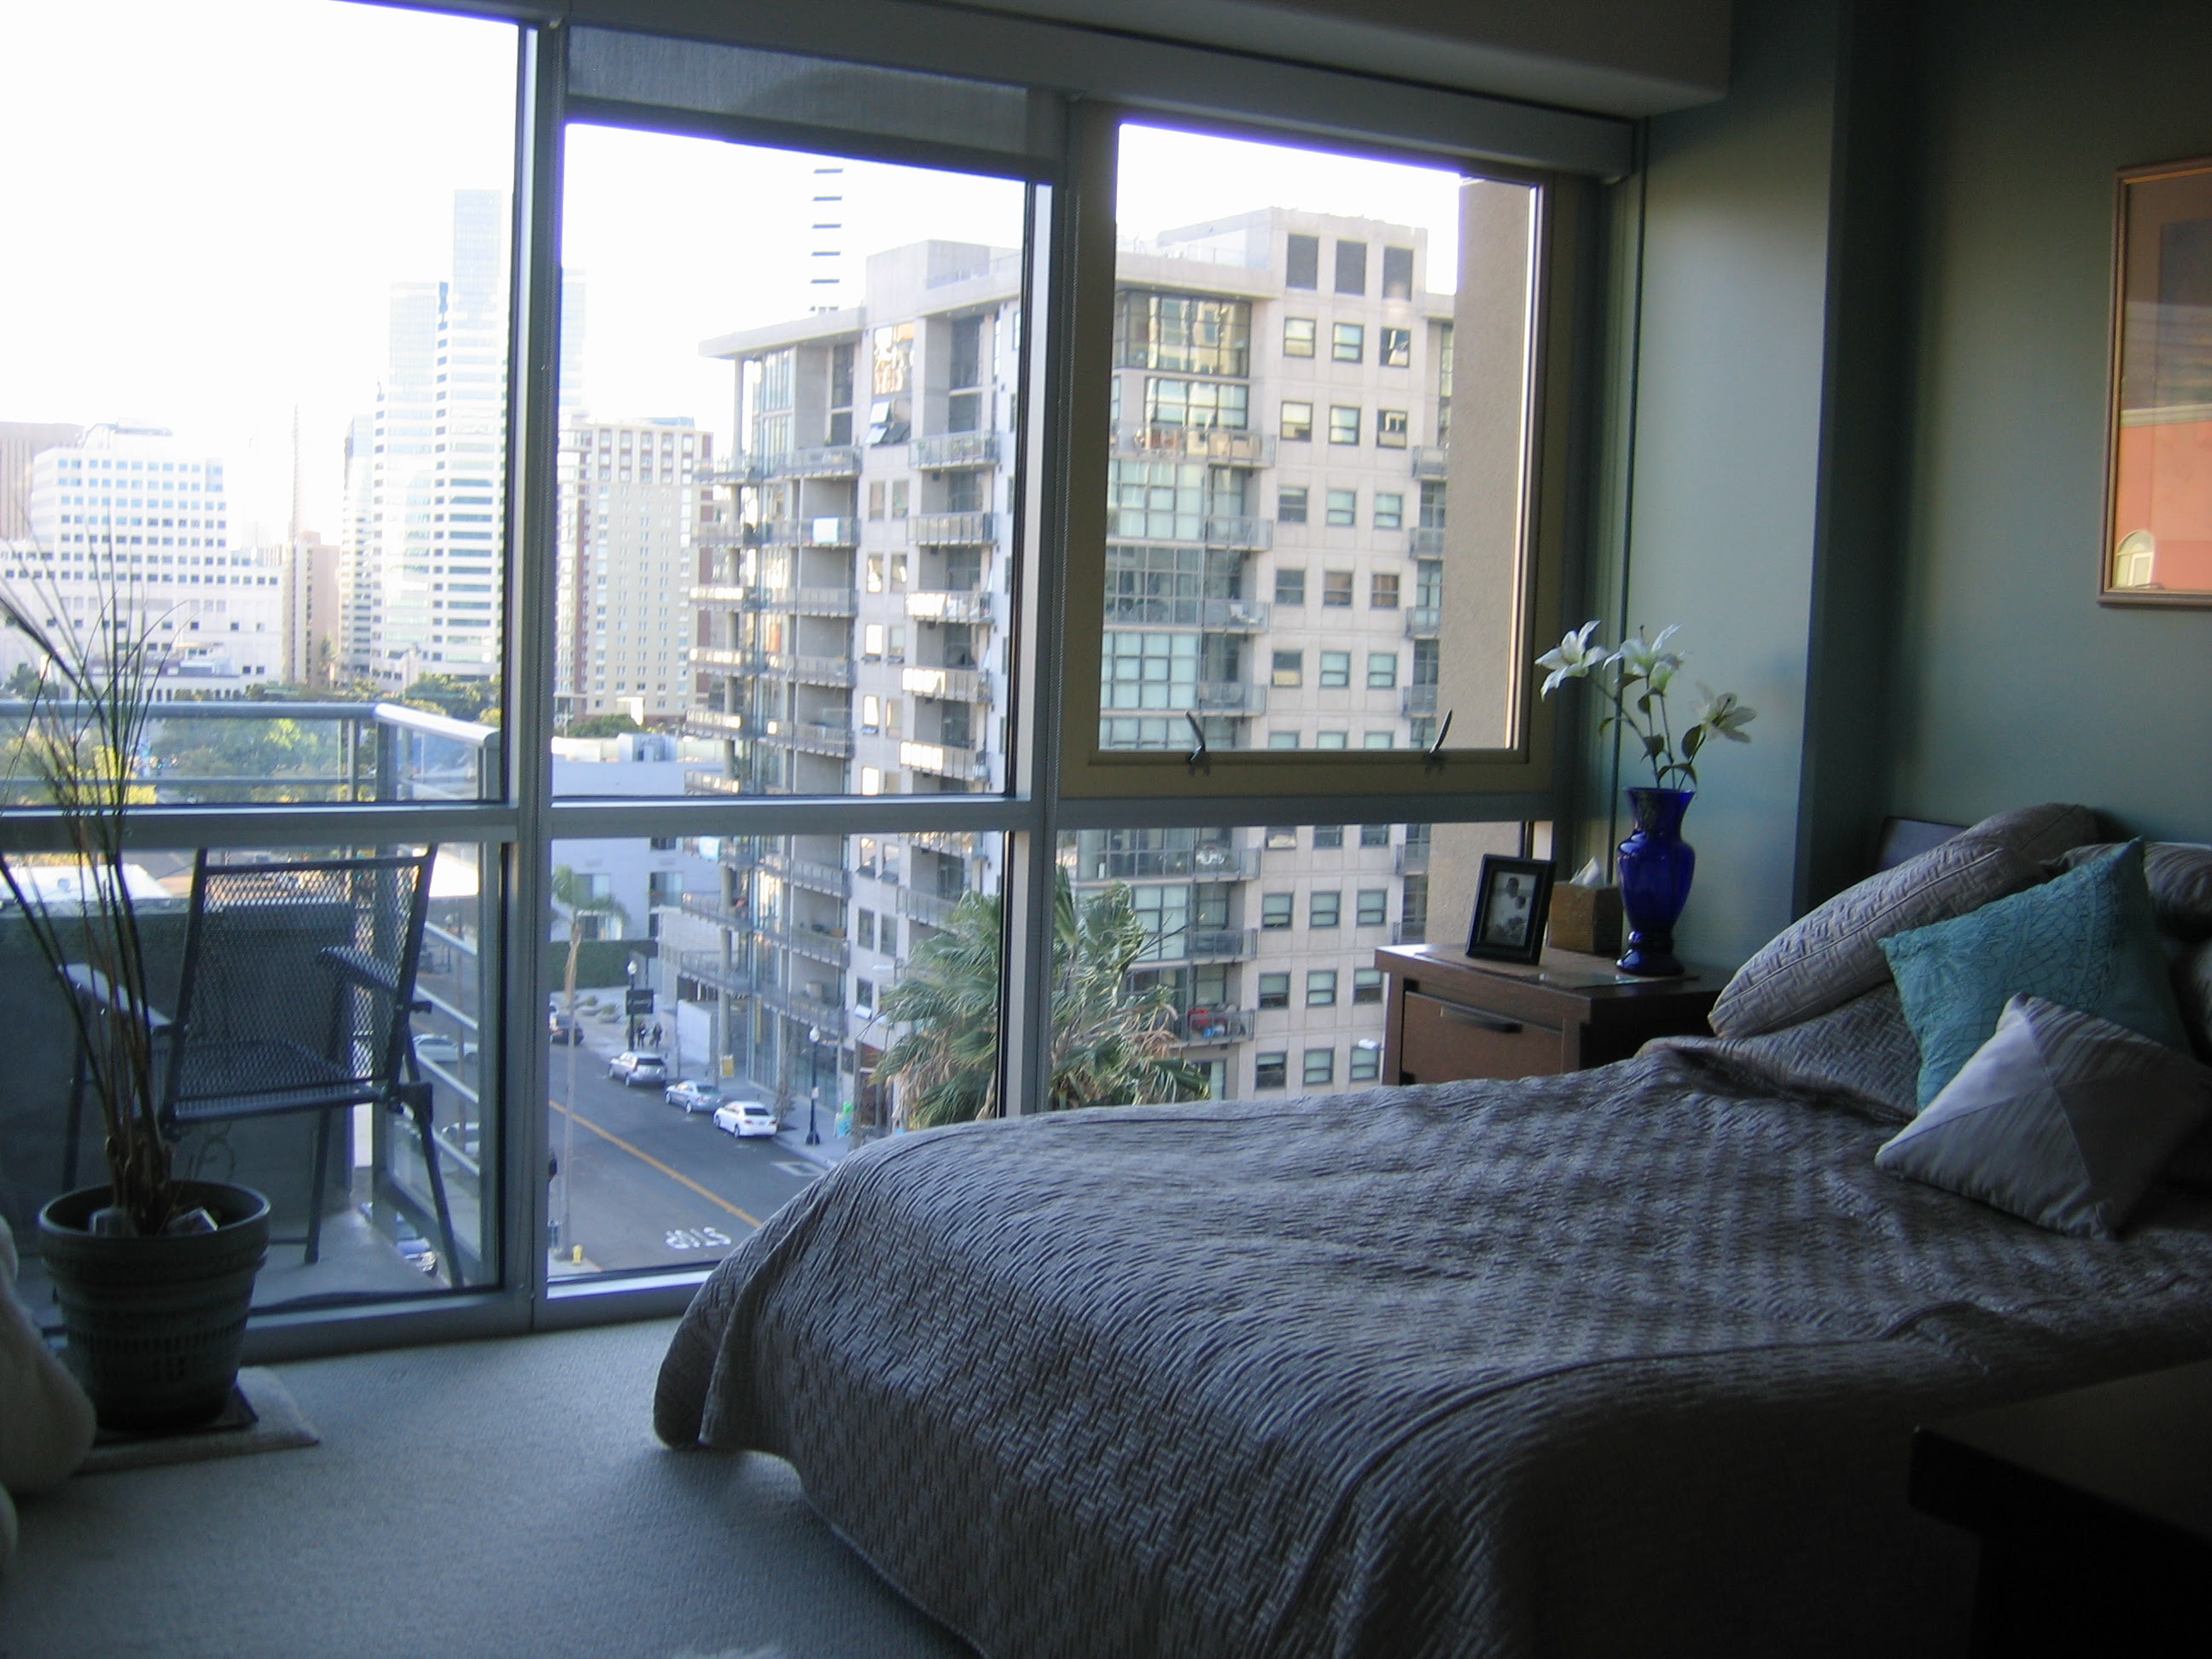 Cheap 1 bedroom apartments for rent in san diego - Cheap one bedroom apartments in san diego ...